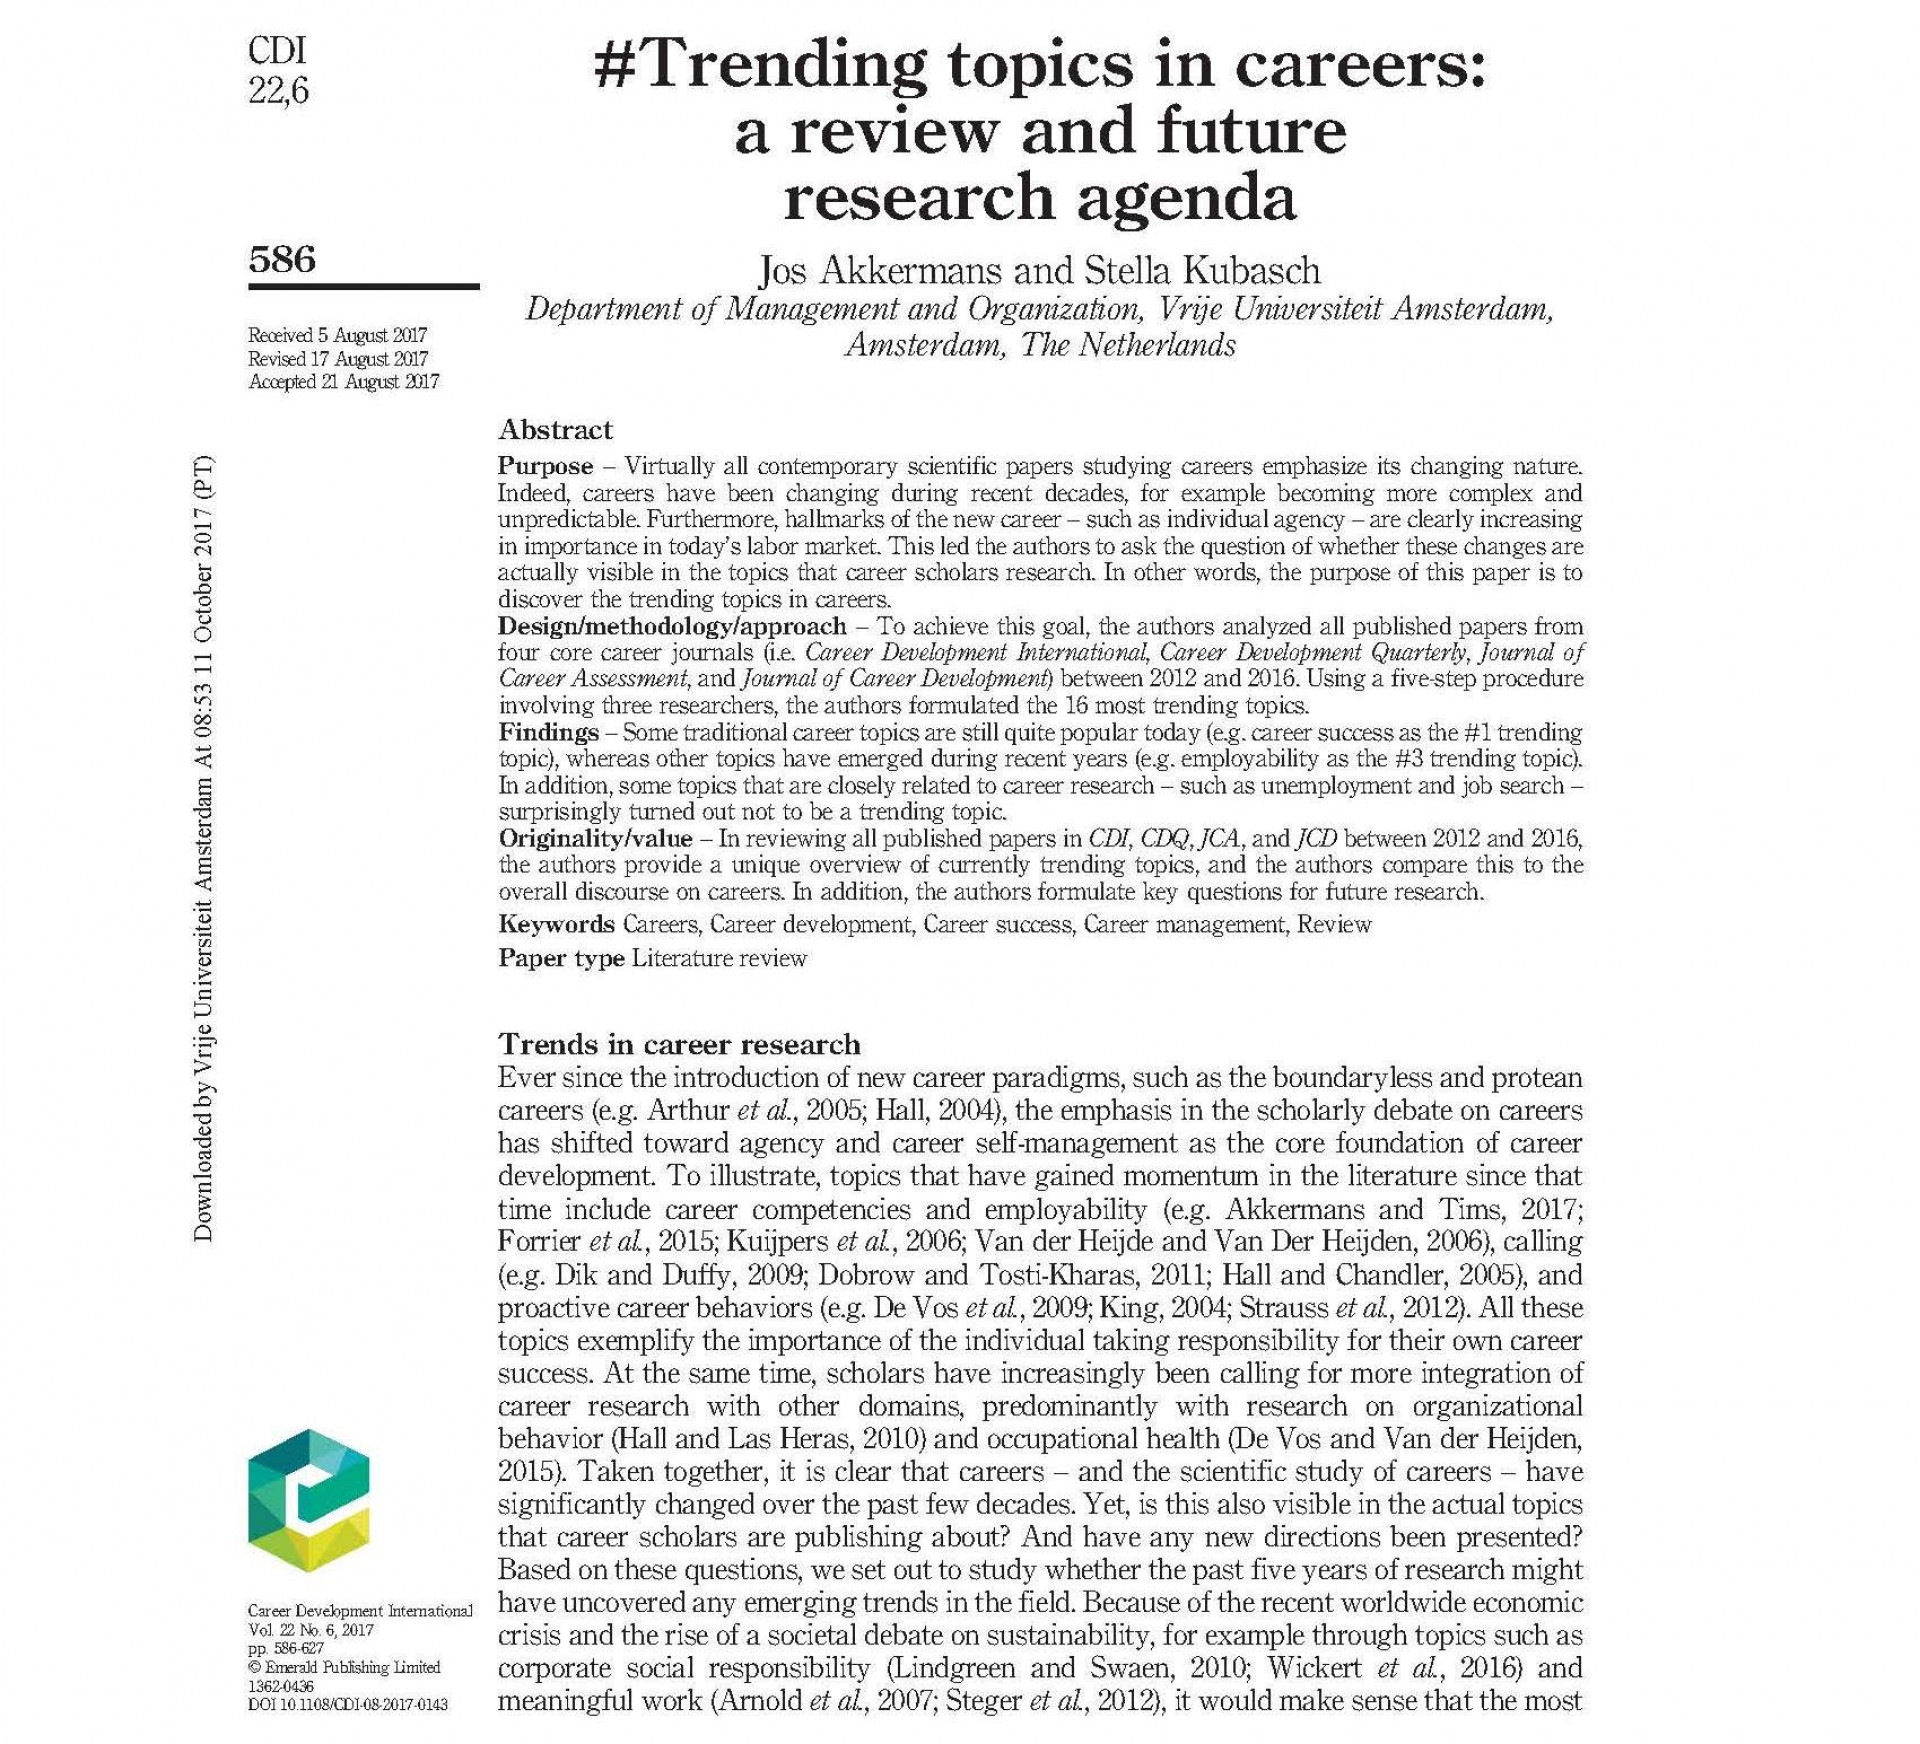 022 59e096d33a29650001209782 1620 20akkermans202620kubasch20201720 20trending20topics20in20careers Research Paper Topics For Impressive Papers 7th Grade Hot In Computer Science Biology High School Students 1920